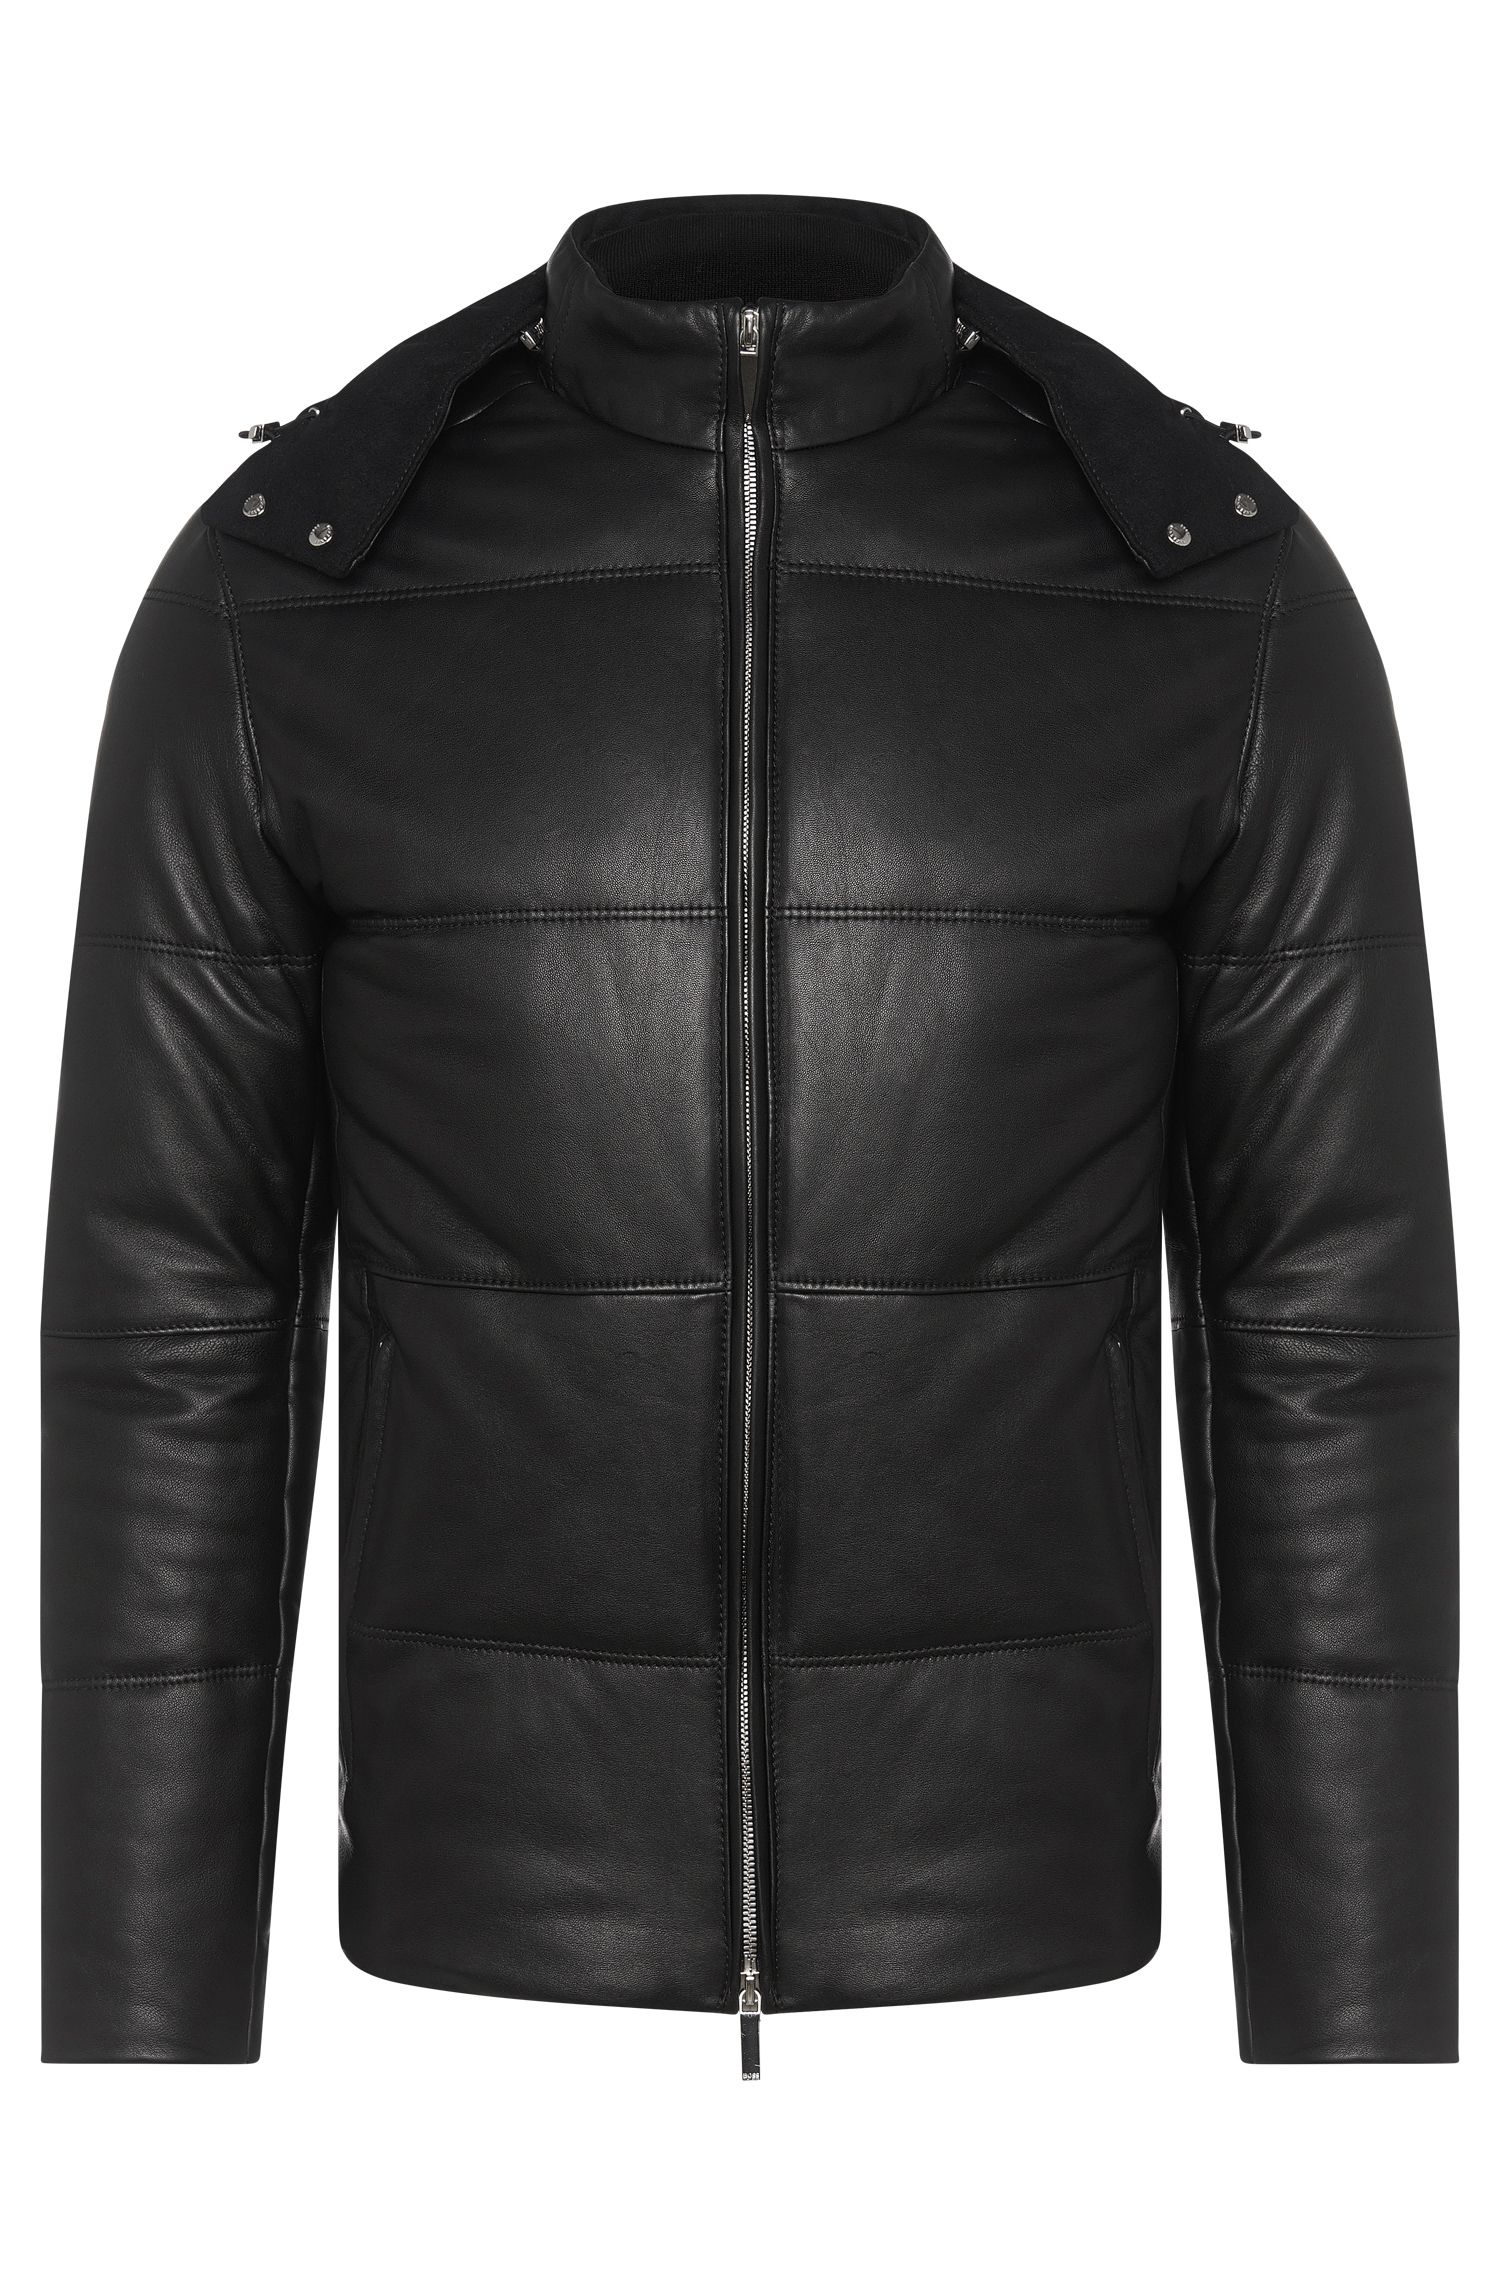 'Nortik' | Lambskin Quilted Puffer Coat, Removable Hood